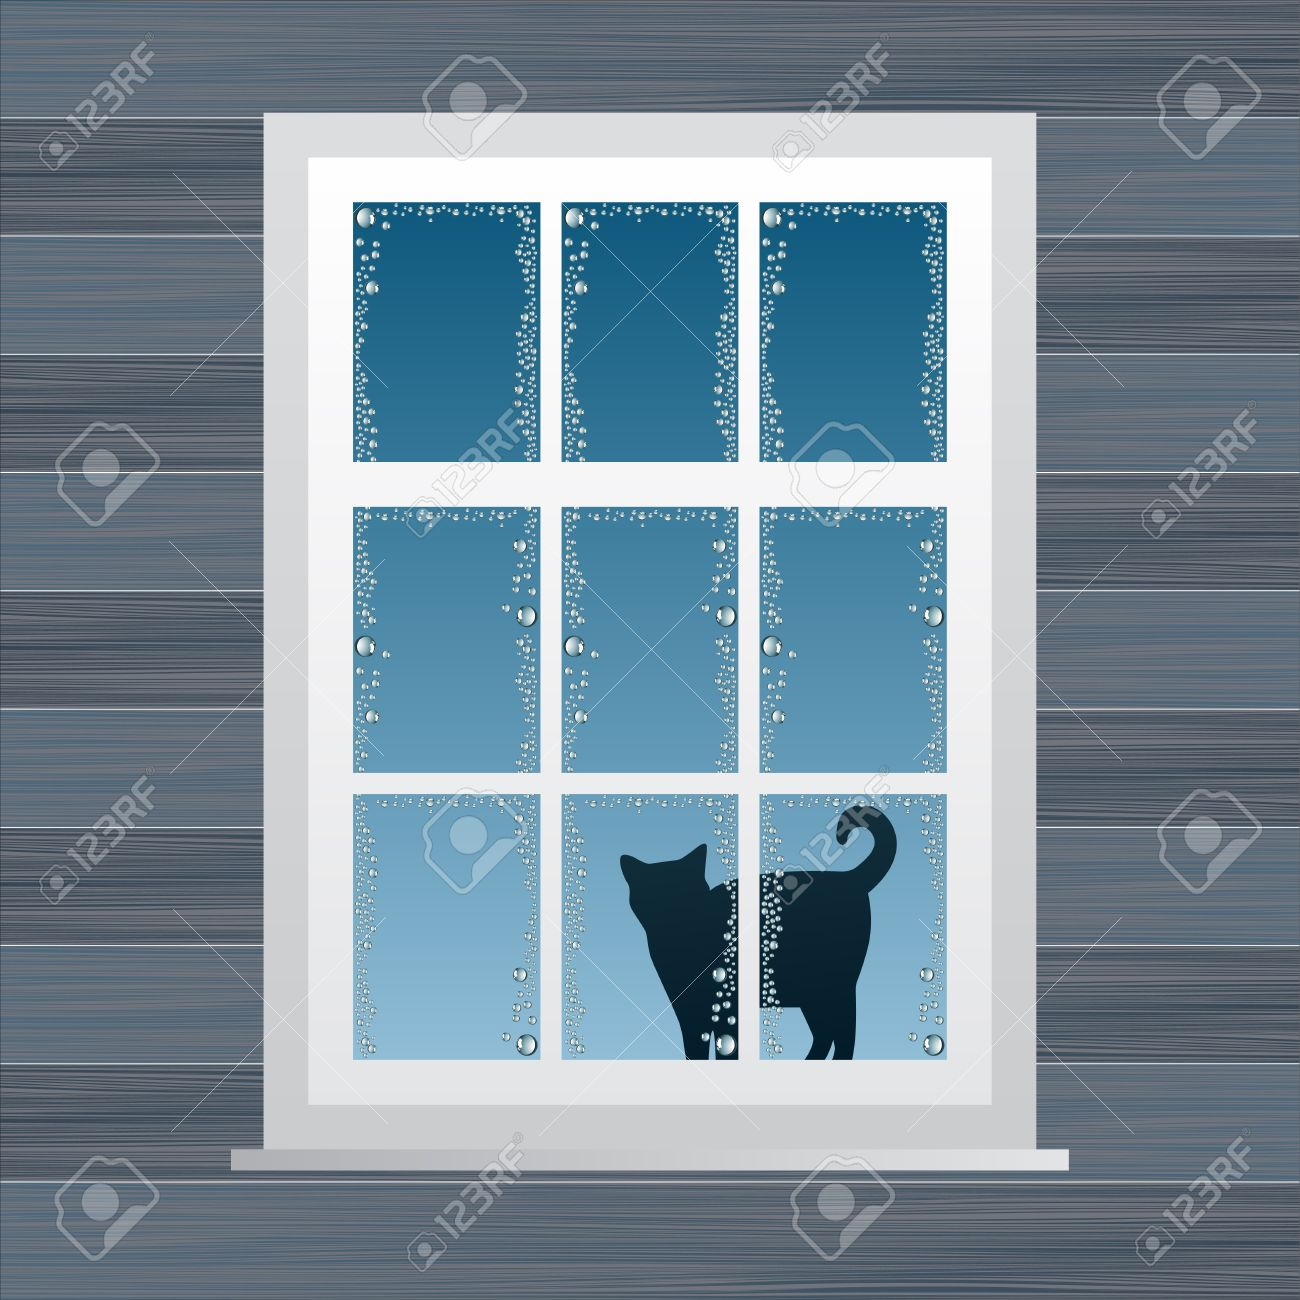 Animated Country House Window Vector Illustration Royalty Free Cliparts Vectors And Stock Illustration Image 10340153